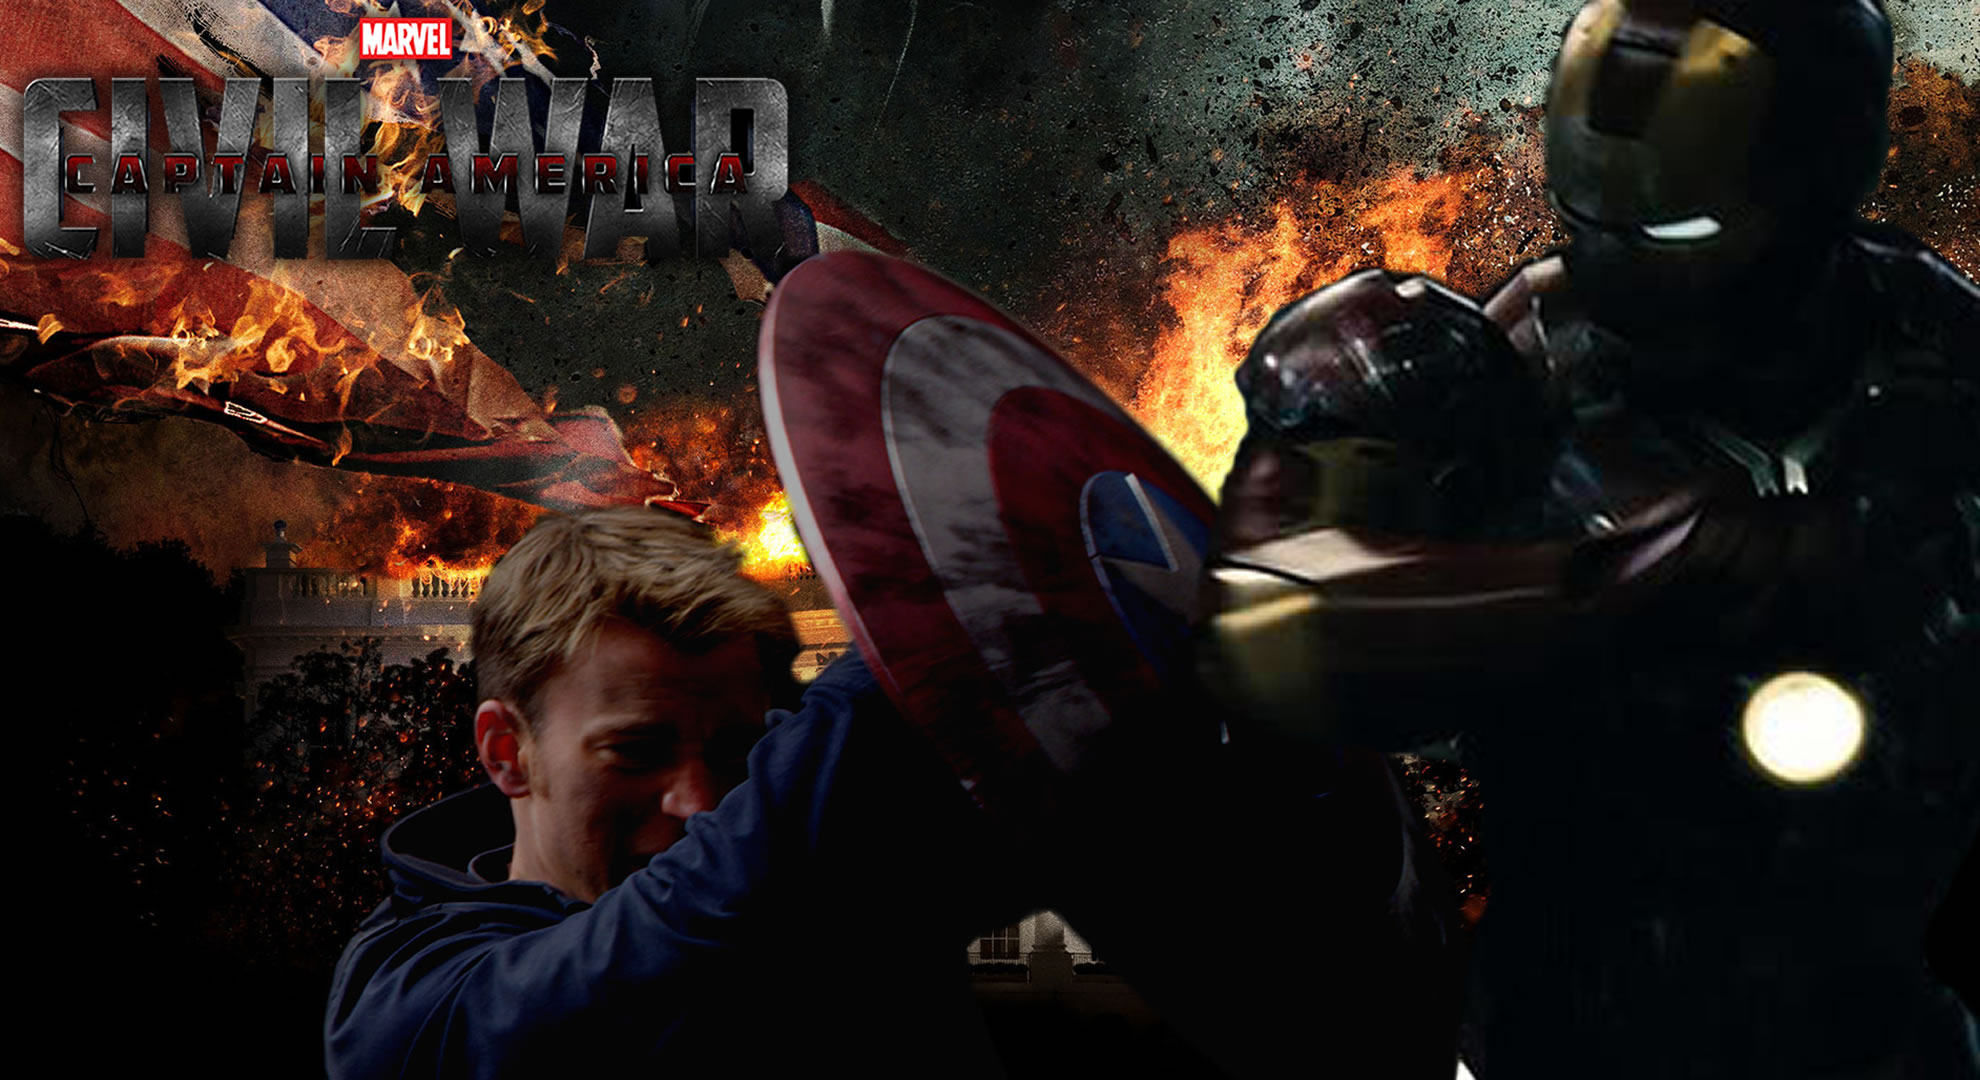 Captain America Civil War 2016 Wallpapers The Art Mad Wallpapers 1980x1080